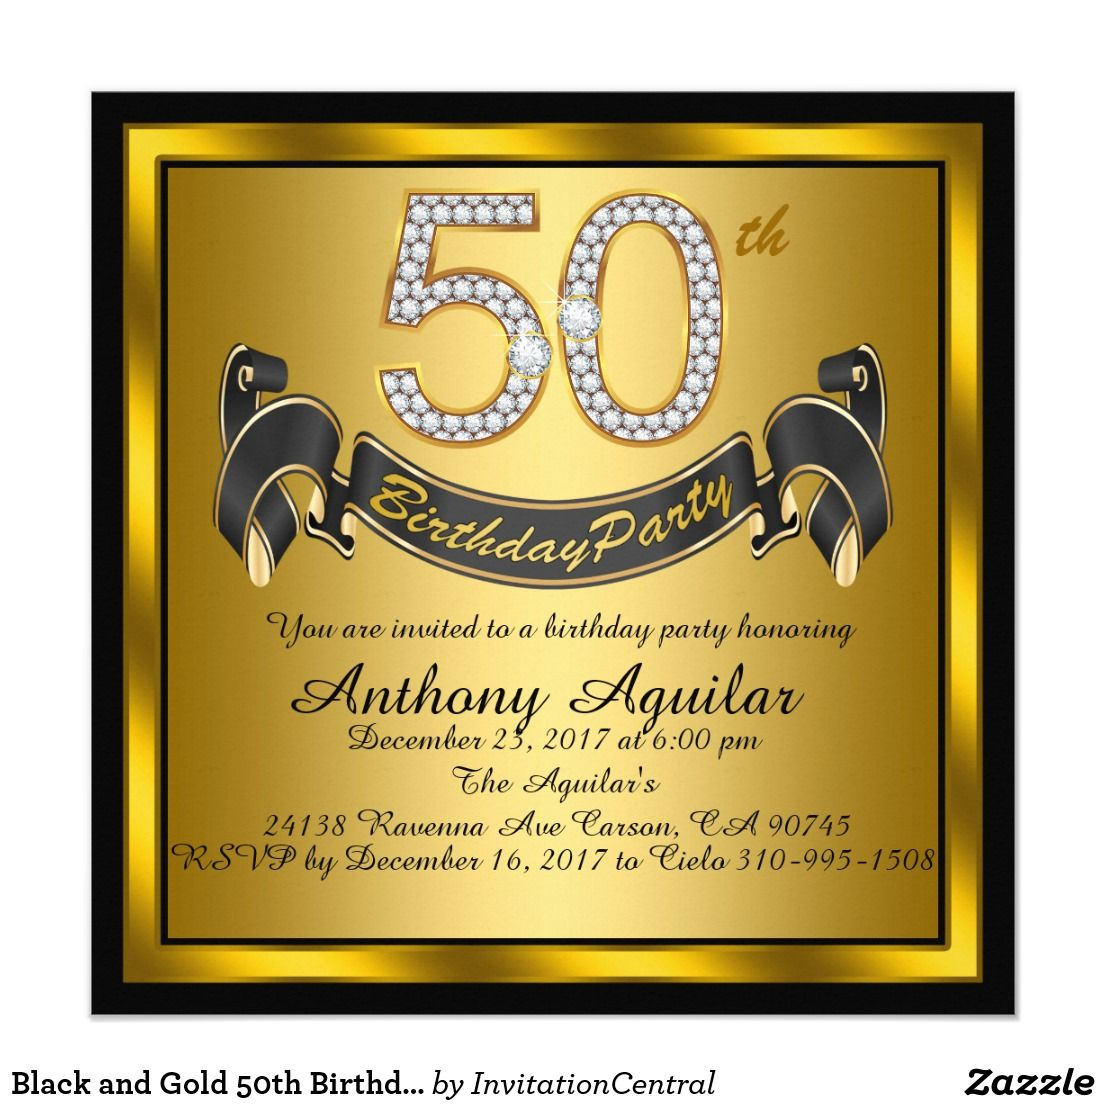 Black And Gold 50th Birthday Party Card